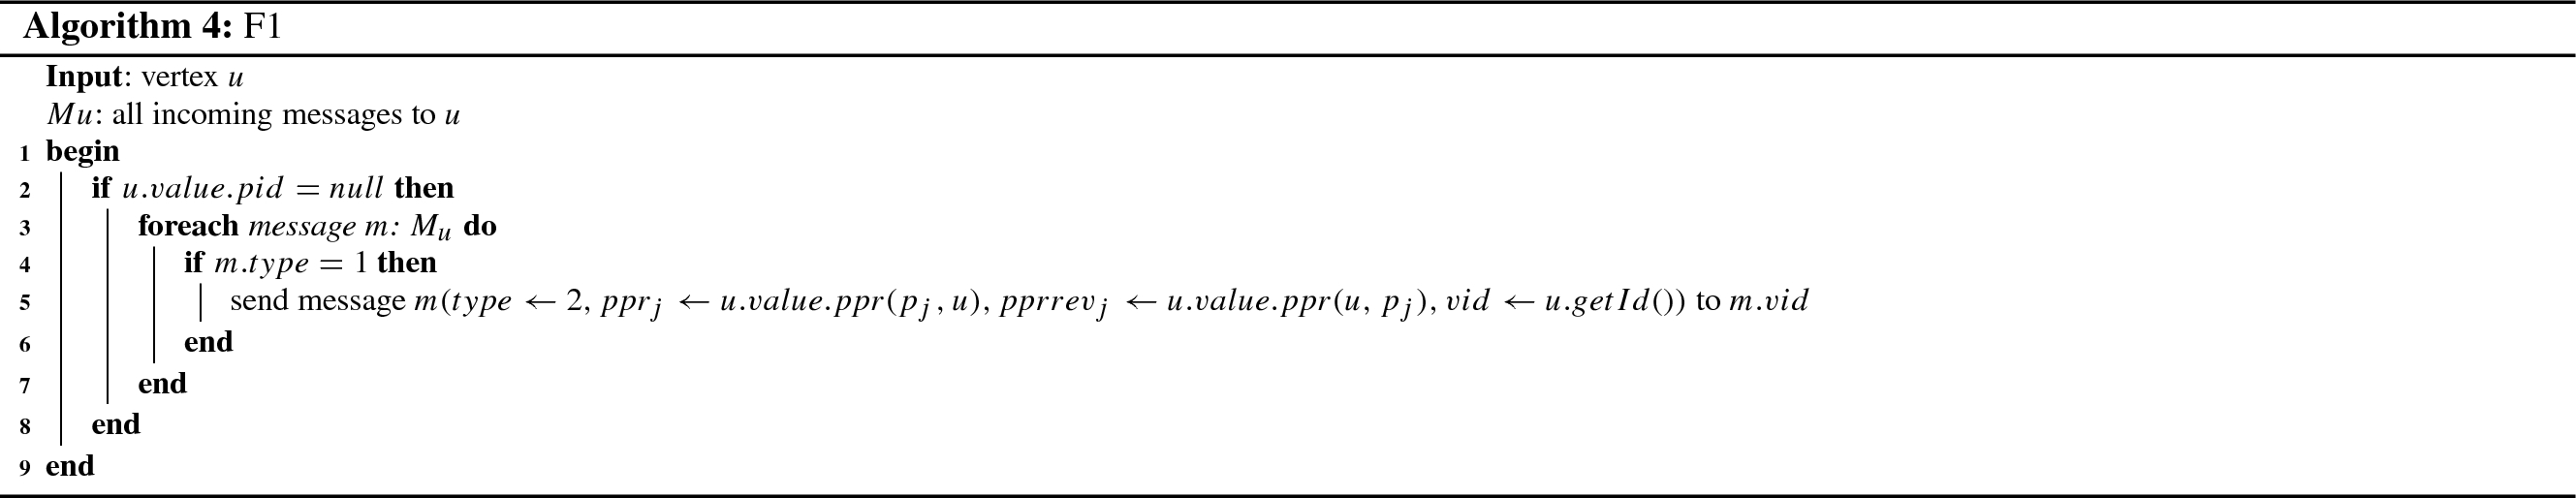 PPR-partitioning: a distributed graph partitioning algorithm